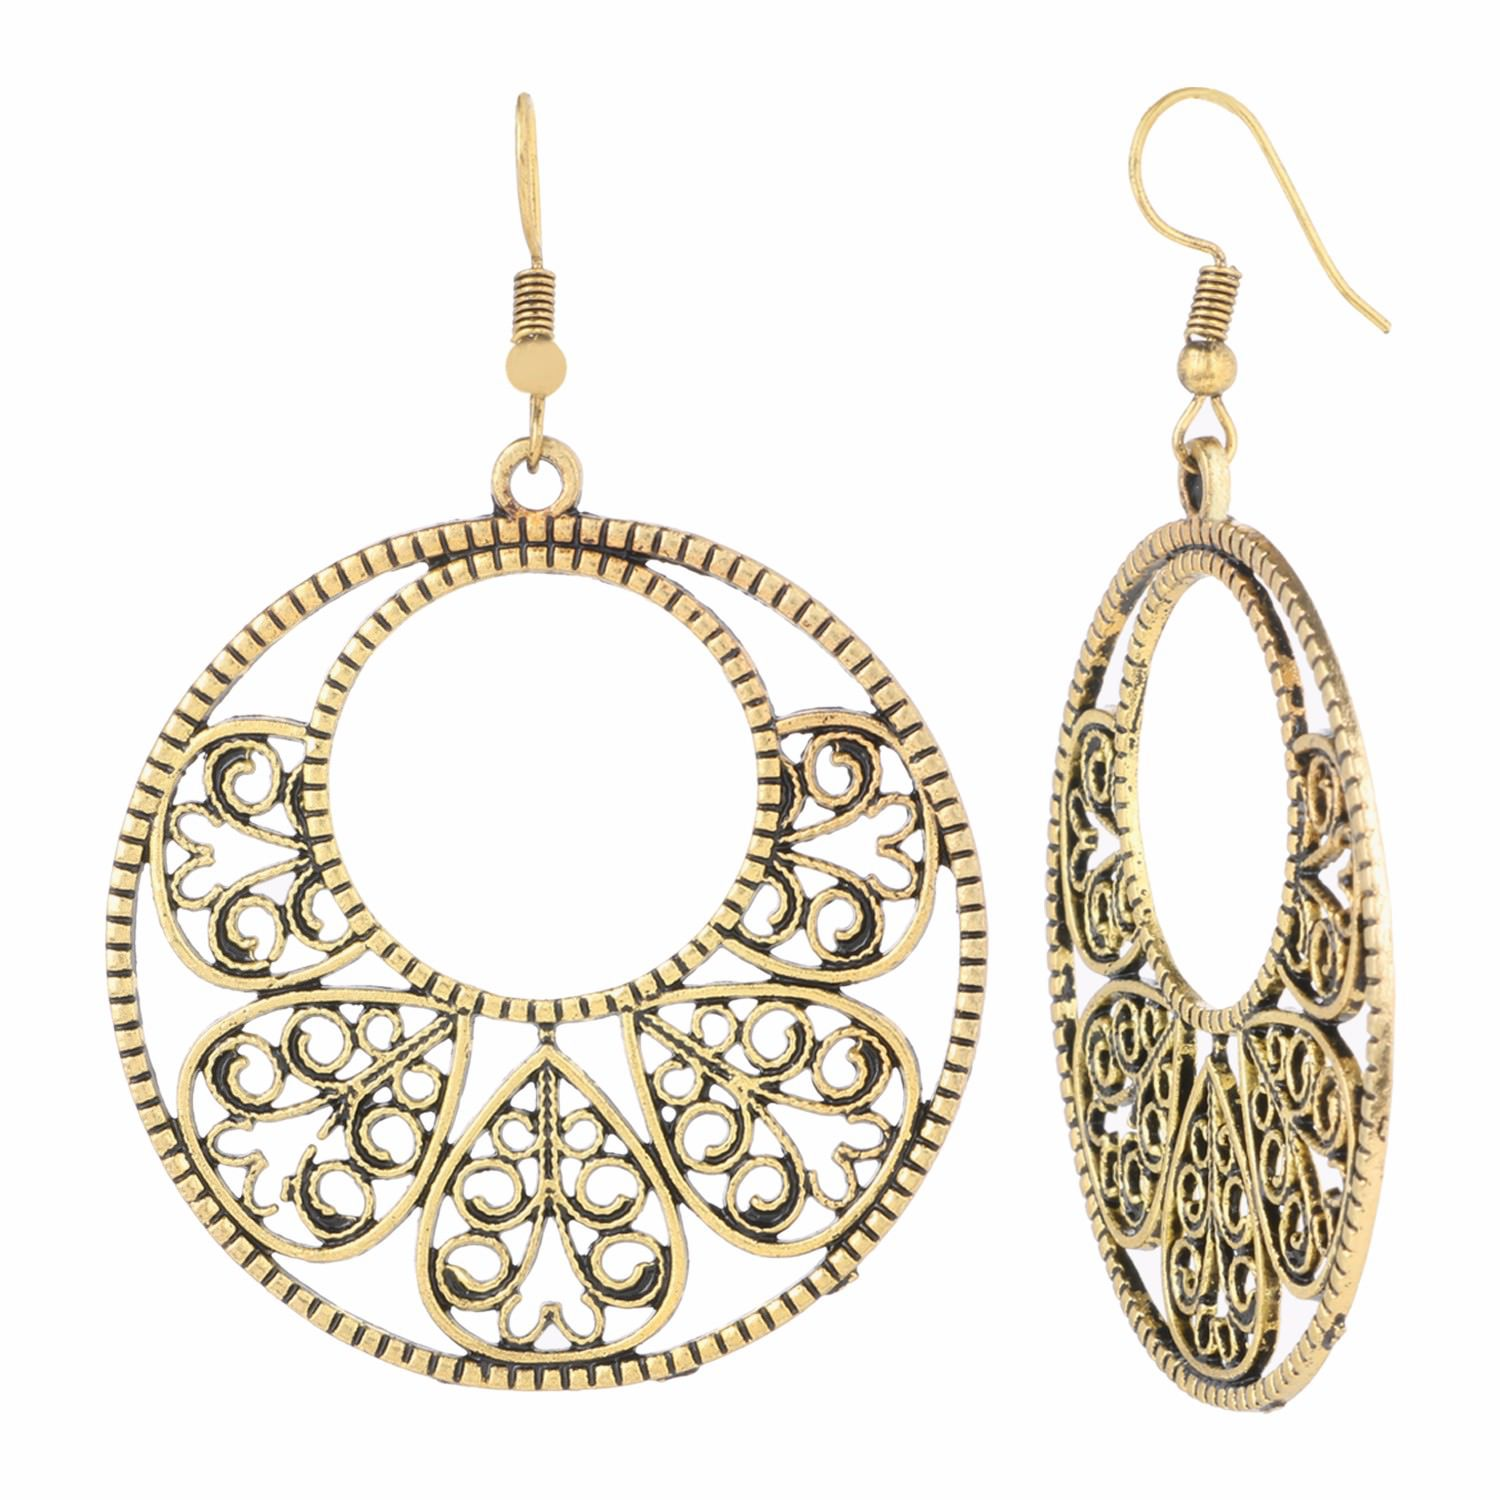 Archi Collection Designer Fancy Party Wear Oxidised Gold Plated Danglers Earrings Jewellery for Girls and Women